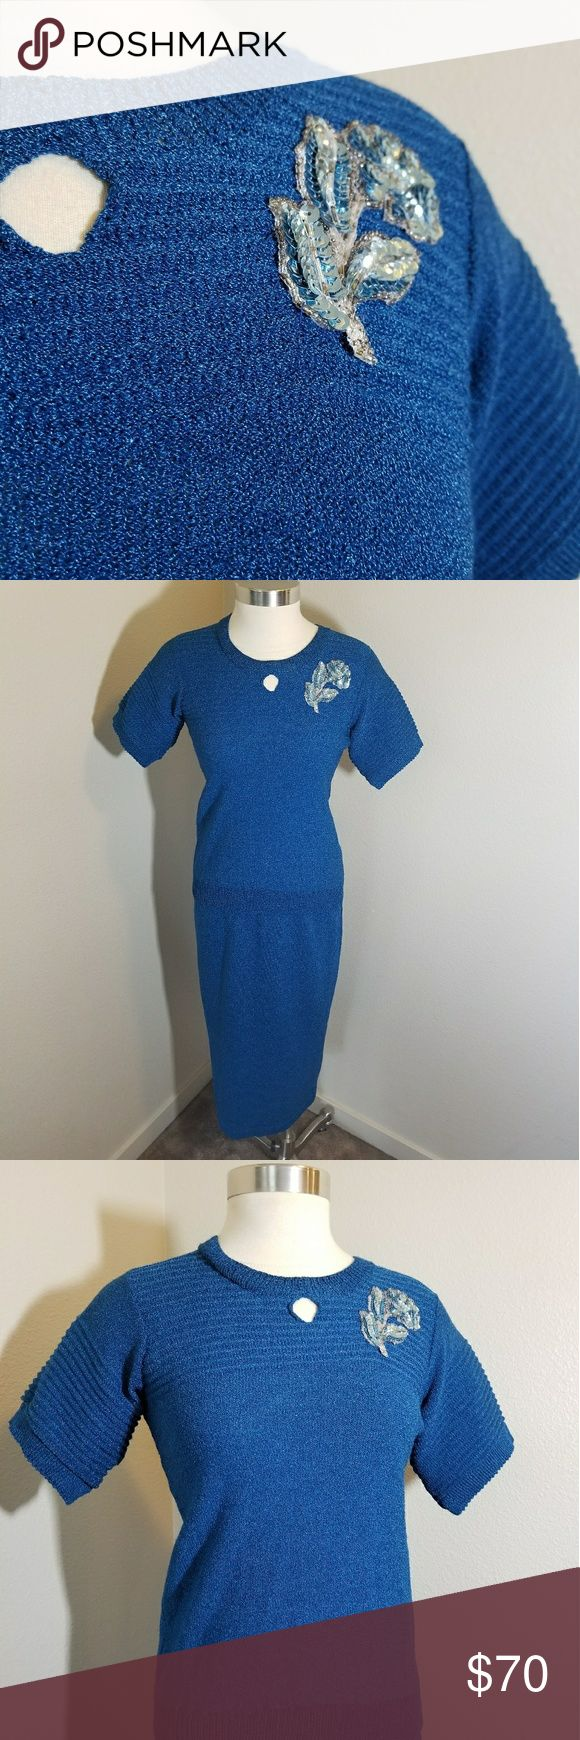 "Vintage knitted aquamarine sweater skirt set 50s M Amazing vintage keyhole embellished sweater with matching skirt. This set is in amazing vintage Condition. Such a beautiful aquamarine color. Waist has elastic that is still functional and the whole garment has some stretch to it. Definitely one of a kind, you won't find another like it. Perfect for everyday or for a fun vintage event.    30"" waist 28"" length of skirt 34"" bust  Rockabilly Rockabettie 50s 60s Knit Swing era Mid century modern…"